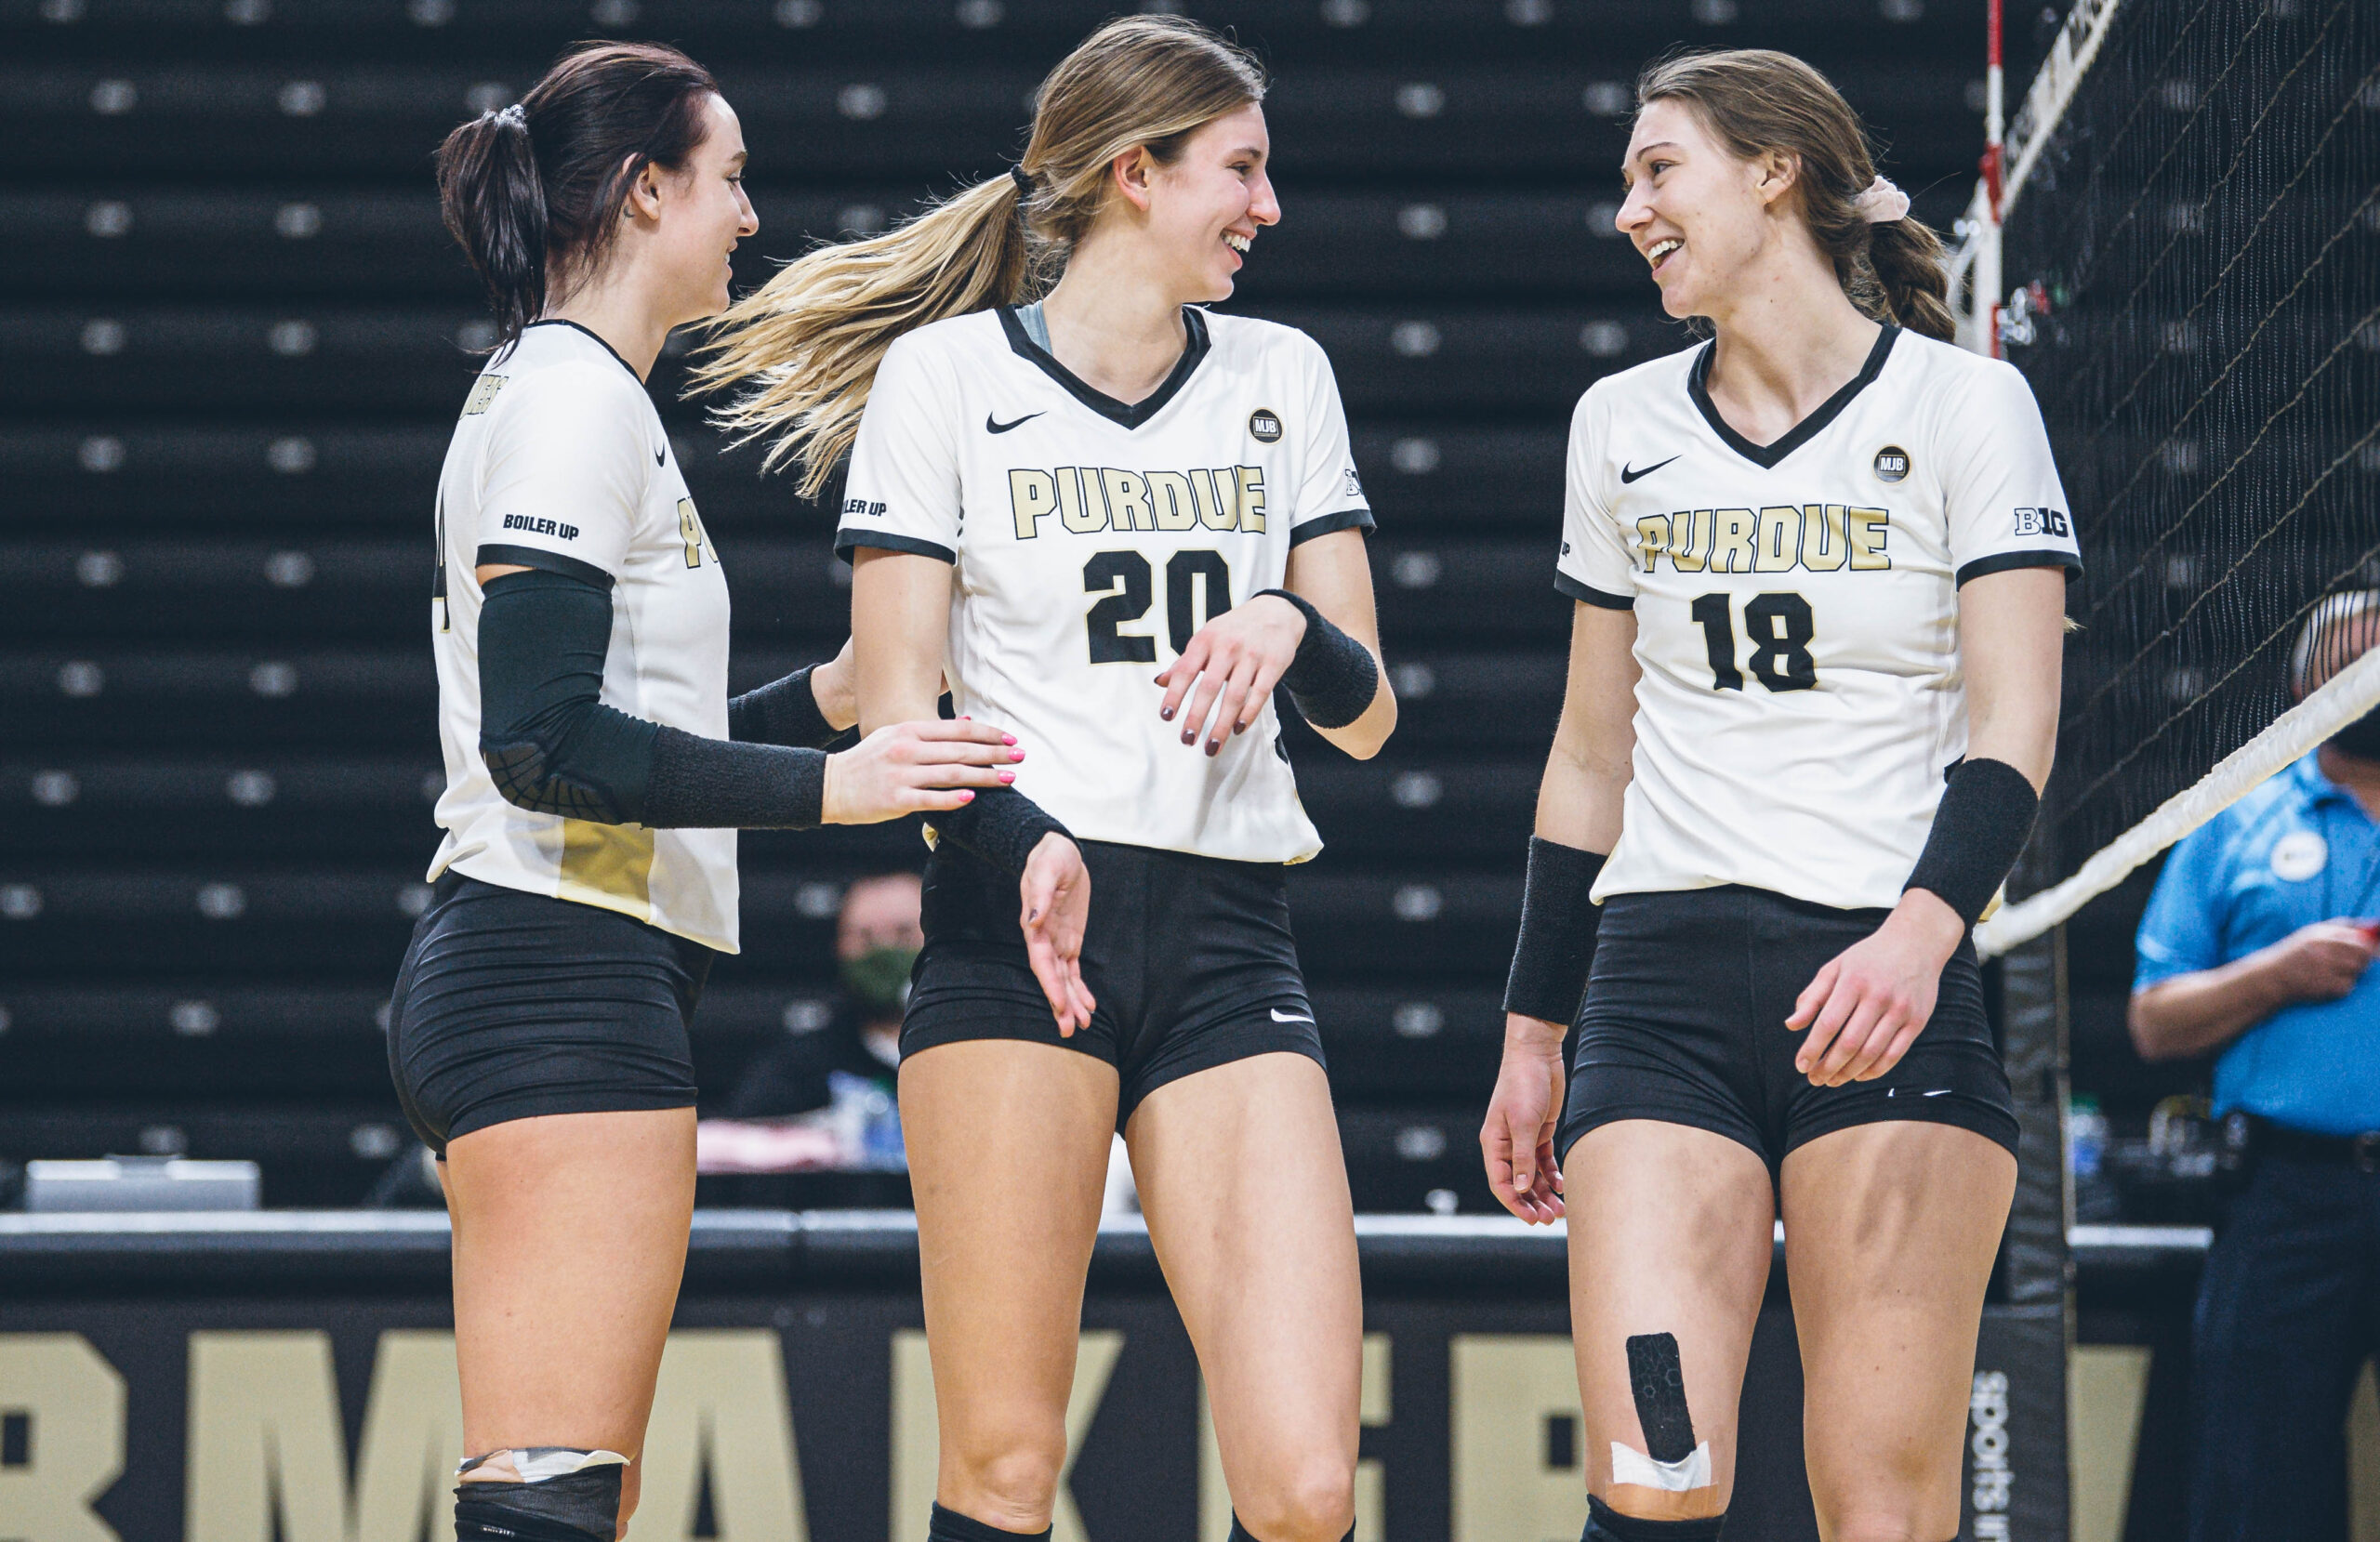 Caitlyn Newton, Grace Cleveland and Jael Johnson, from left, celebrate a point during a Purdue volleyball game.